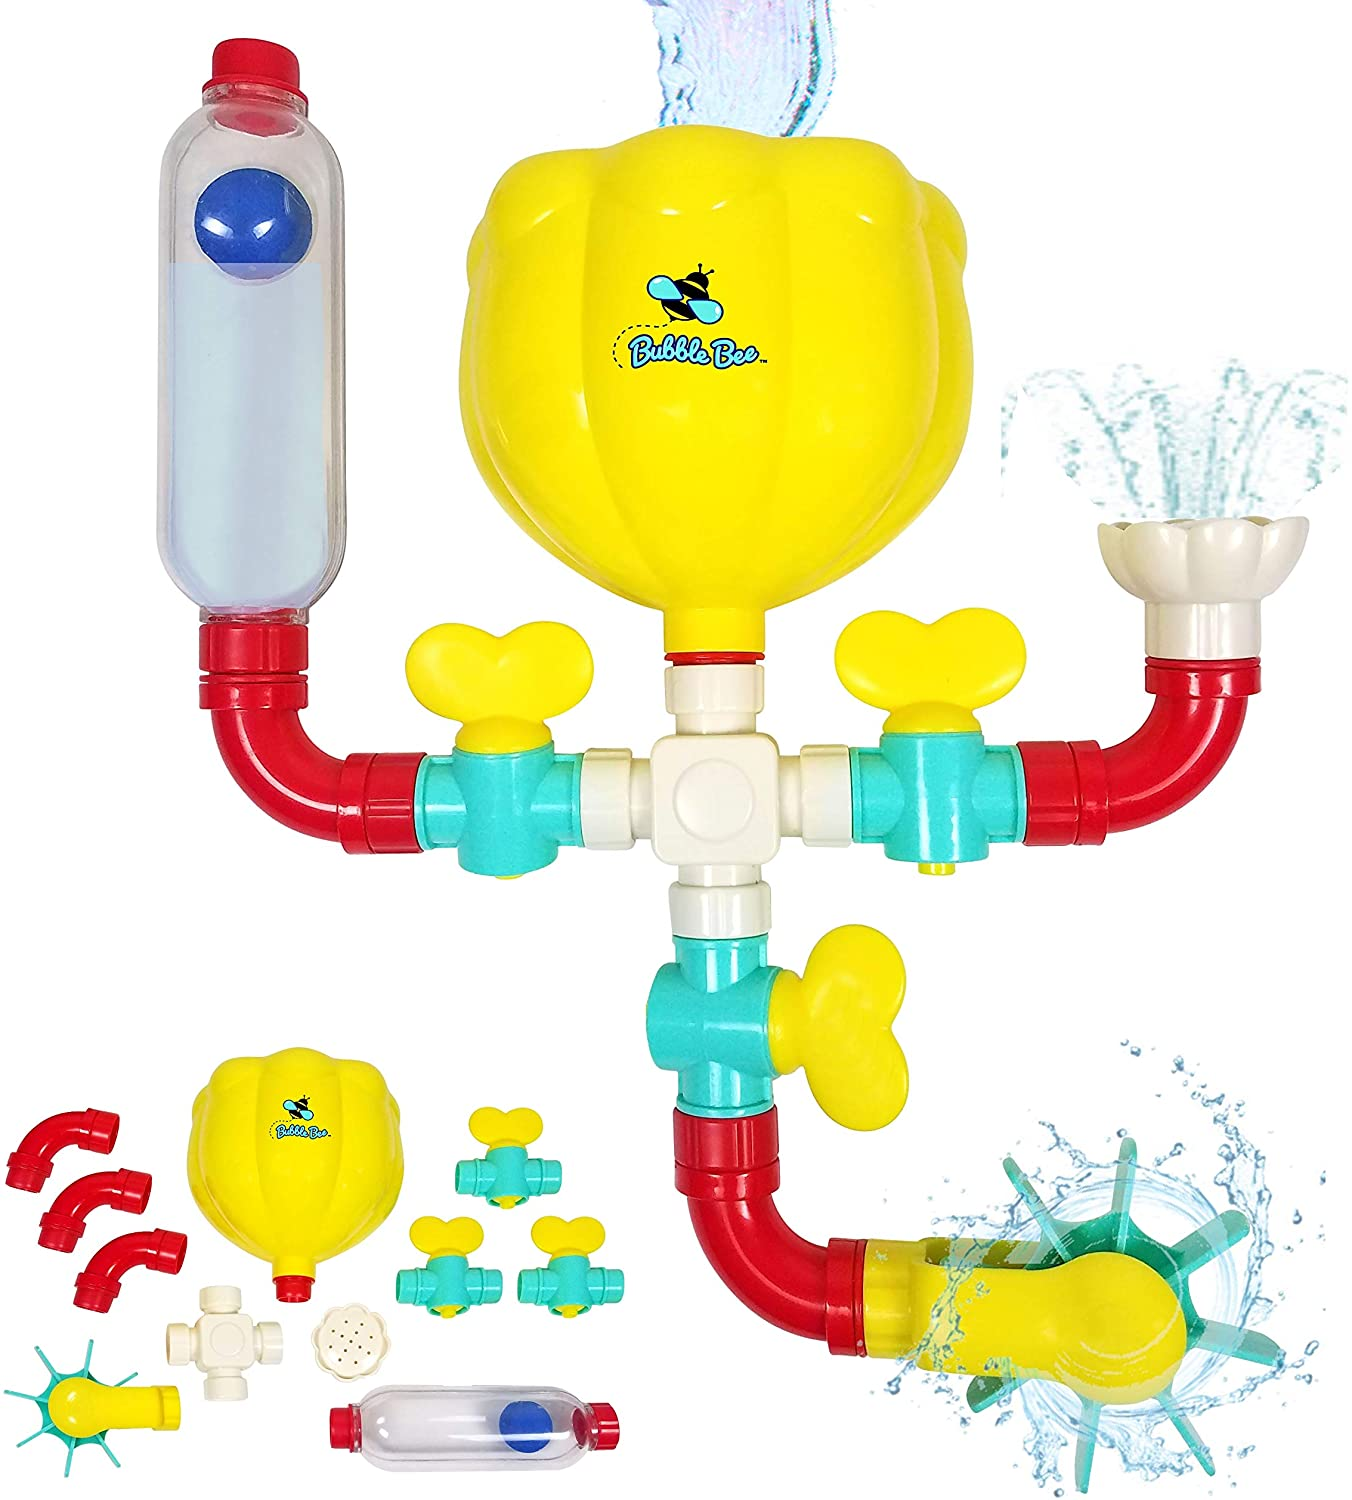 BubbleBee Bath Toys - 11 Piece Bath Toy Set, STEM Toys with Pipes N Valves, Shower, Water Wheel, Ball and Tube - Bathtub Toys for 3 Year Old 4 5 6 7 8 Mold Free Bath Toys, Montessori Toys for Toddlers